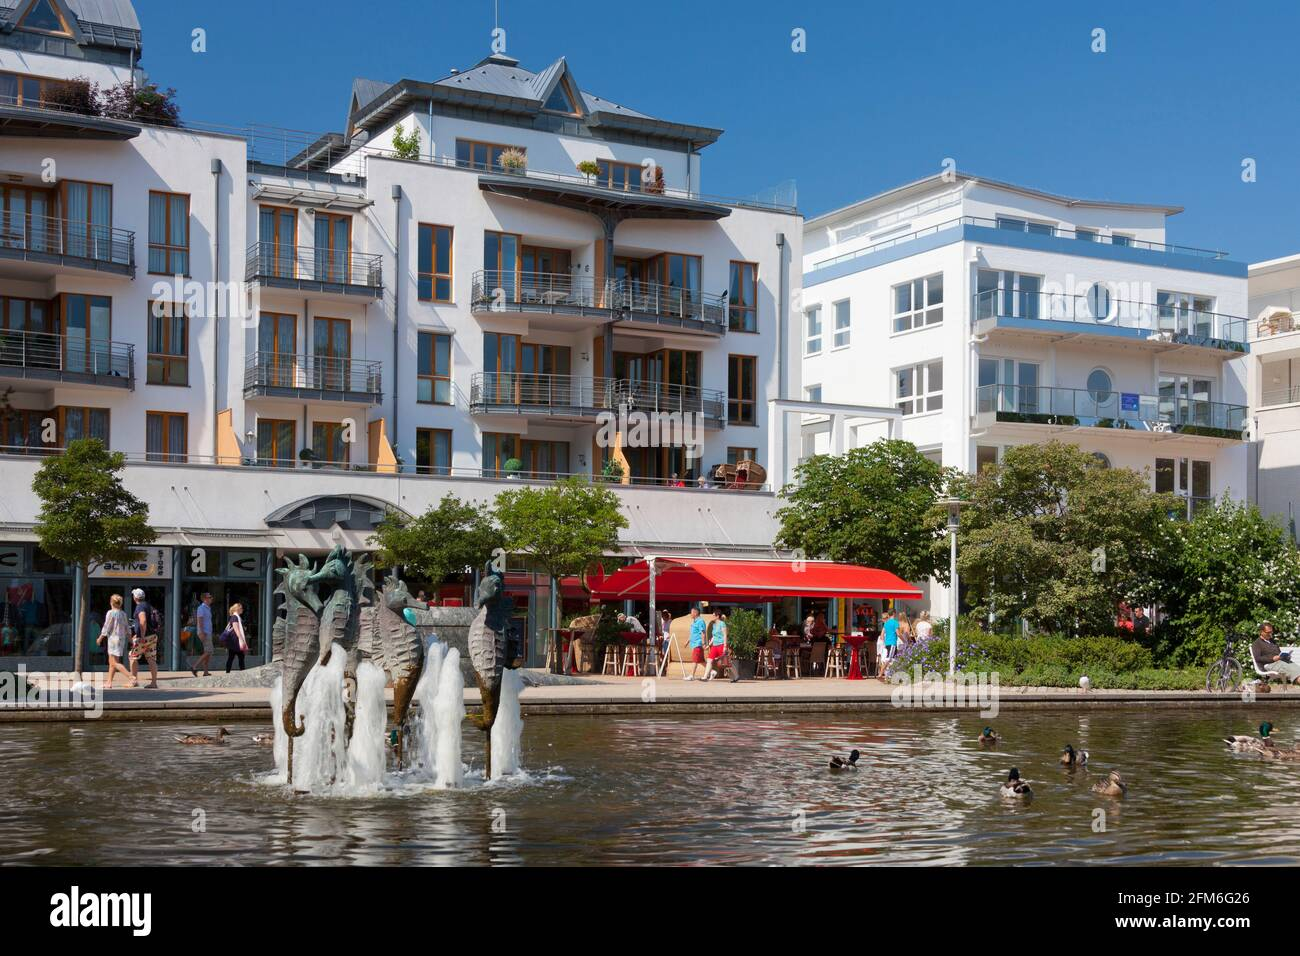 Promenade with shops and apartments at Timmendorfer Strand / Timmendorf Beach along the Baltic Sea, Ostholstein, Schleswig-Holstein, Germany Stock Photo